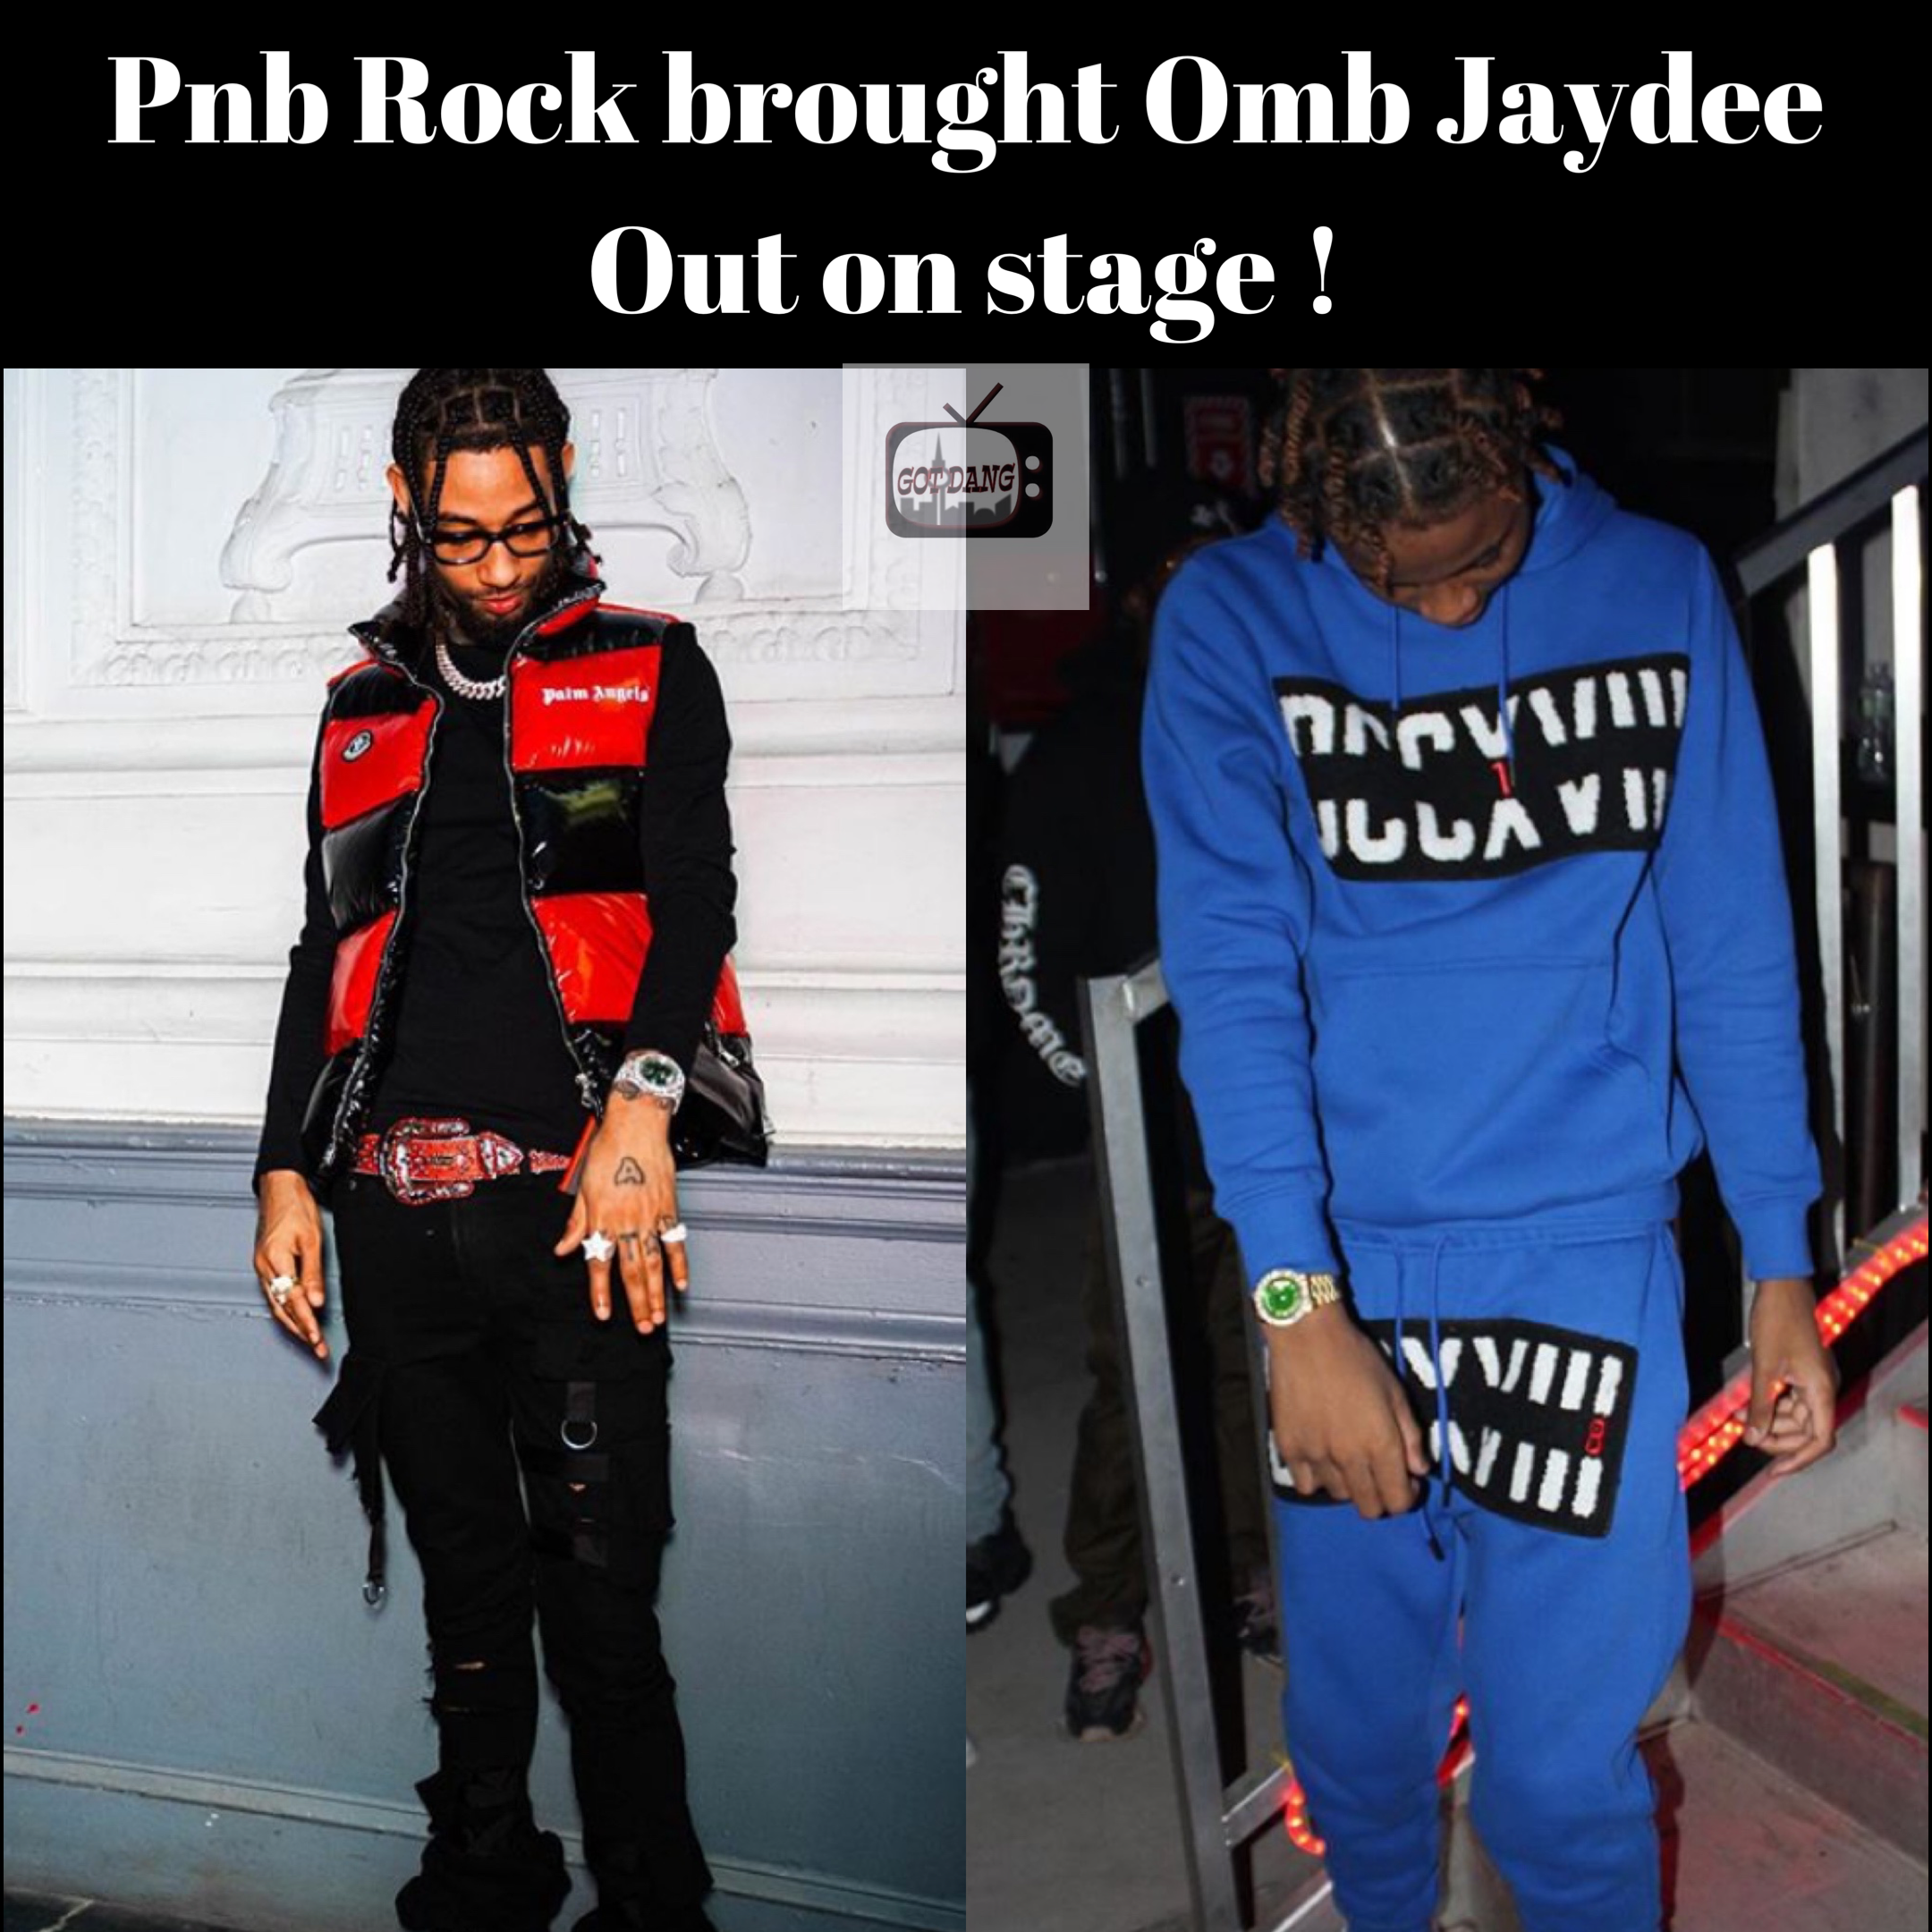 Omb Jaydee says Pnb Rock brought him out on Stage !